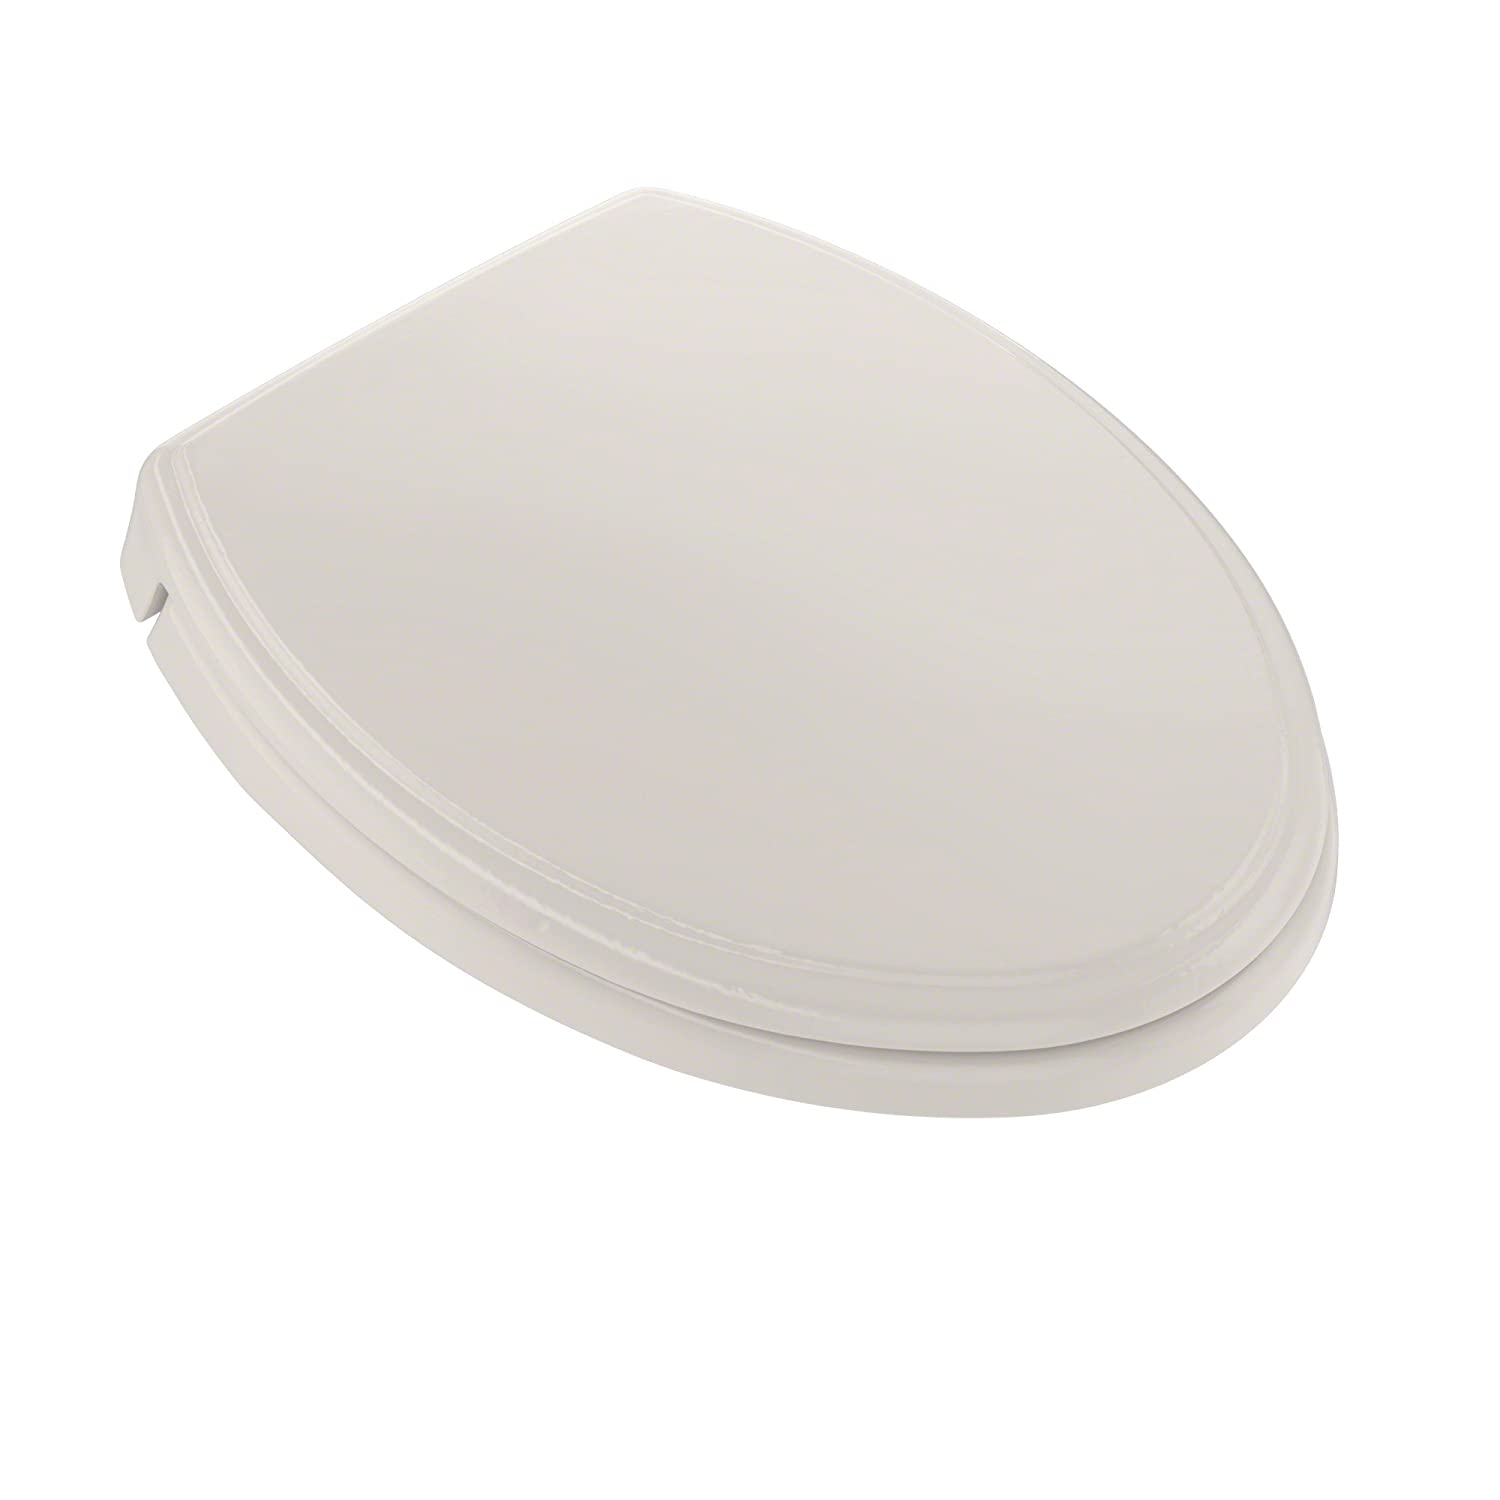 TOTO Traditional SoftClose Elongated Toilet Seat